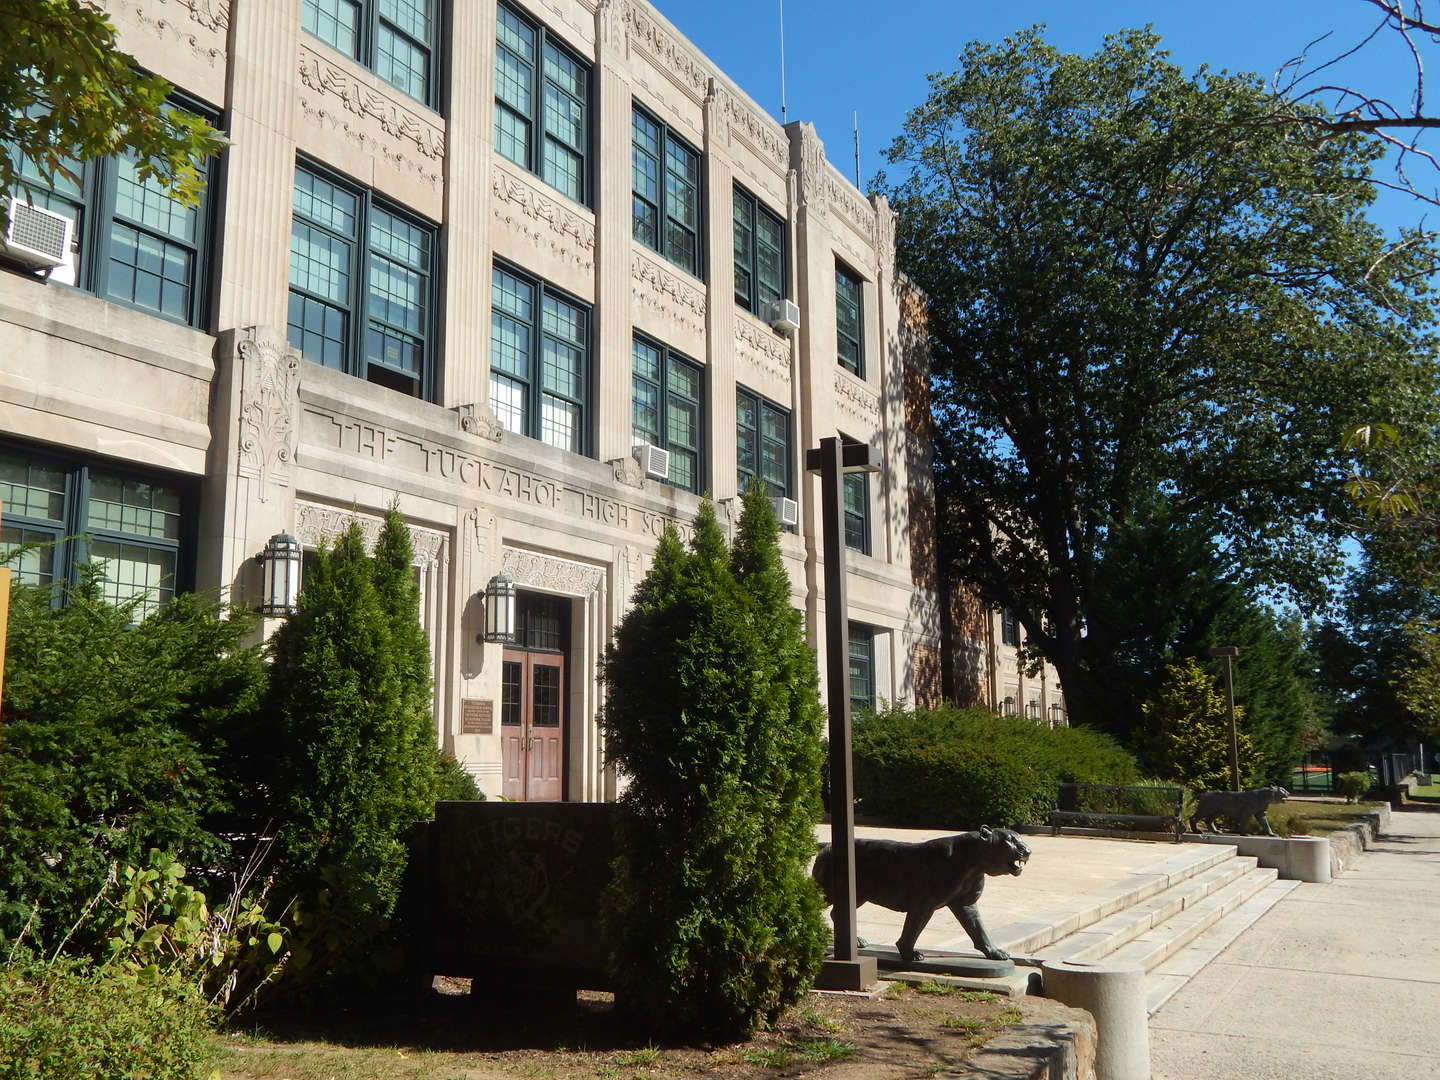 photo of Tuckahoe High School building